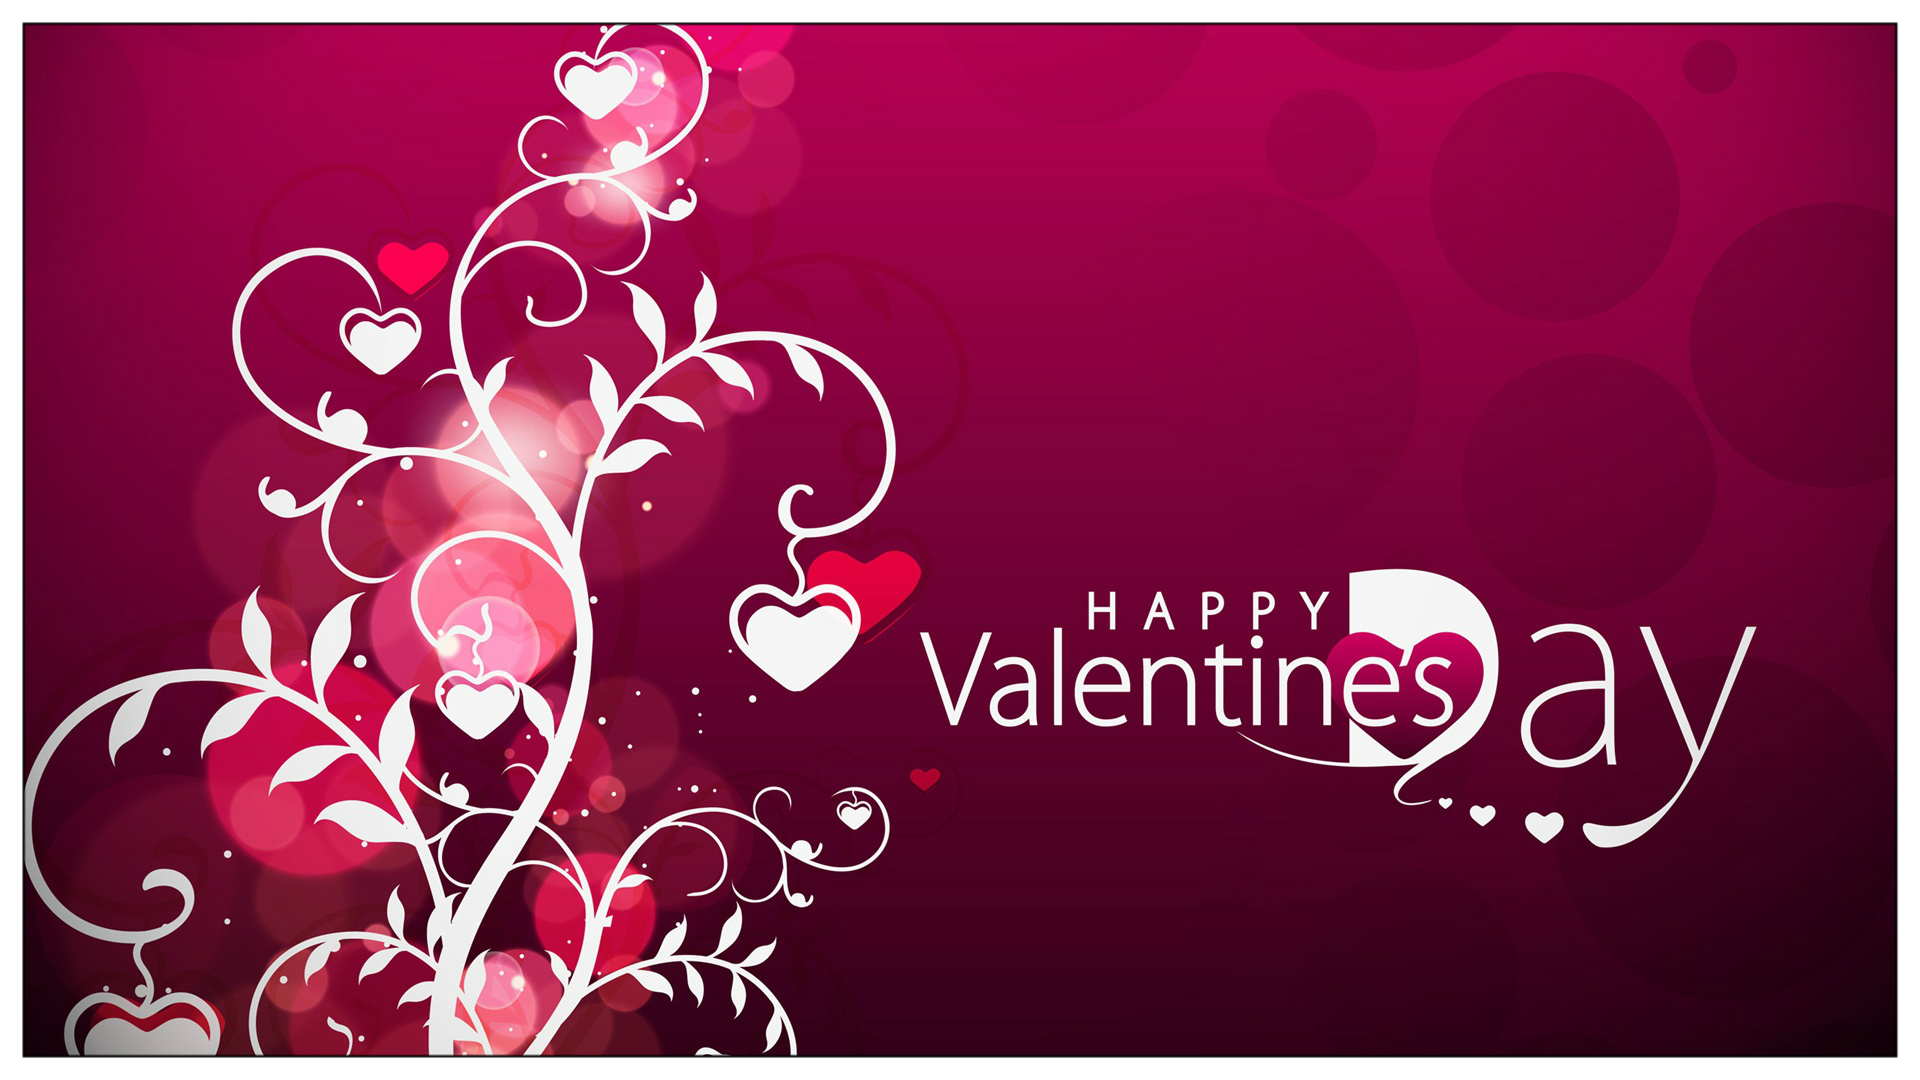 Happy-Valentines-Day-Pink-Love-Wallpapers.jpg